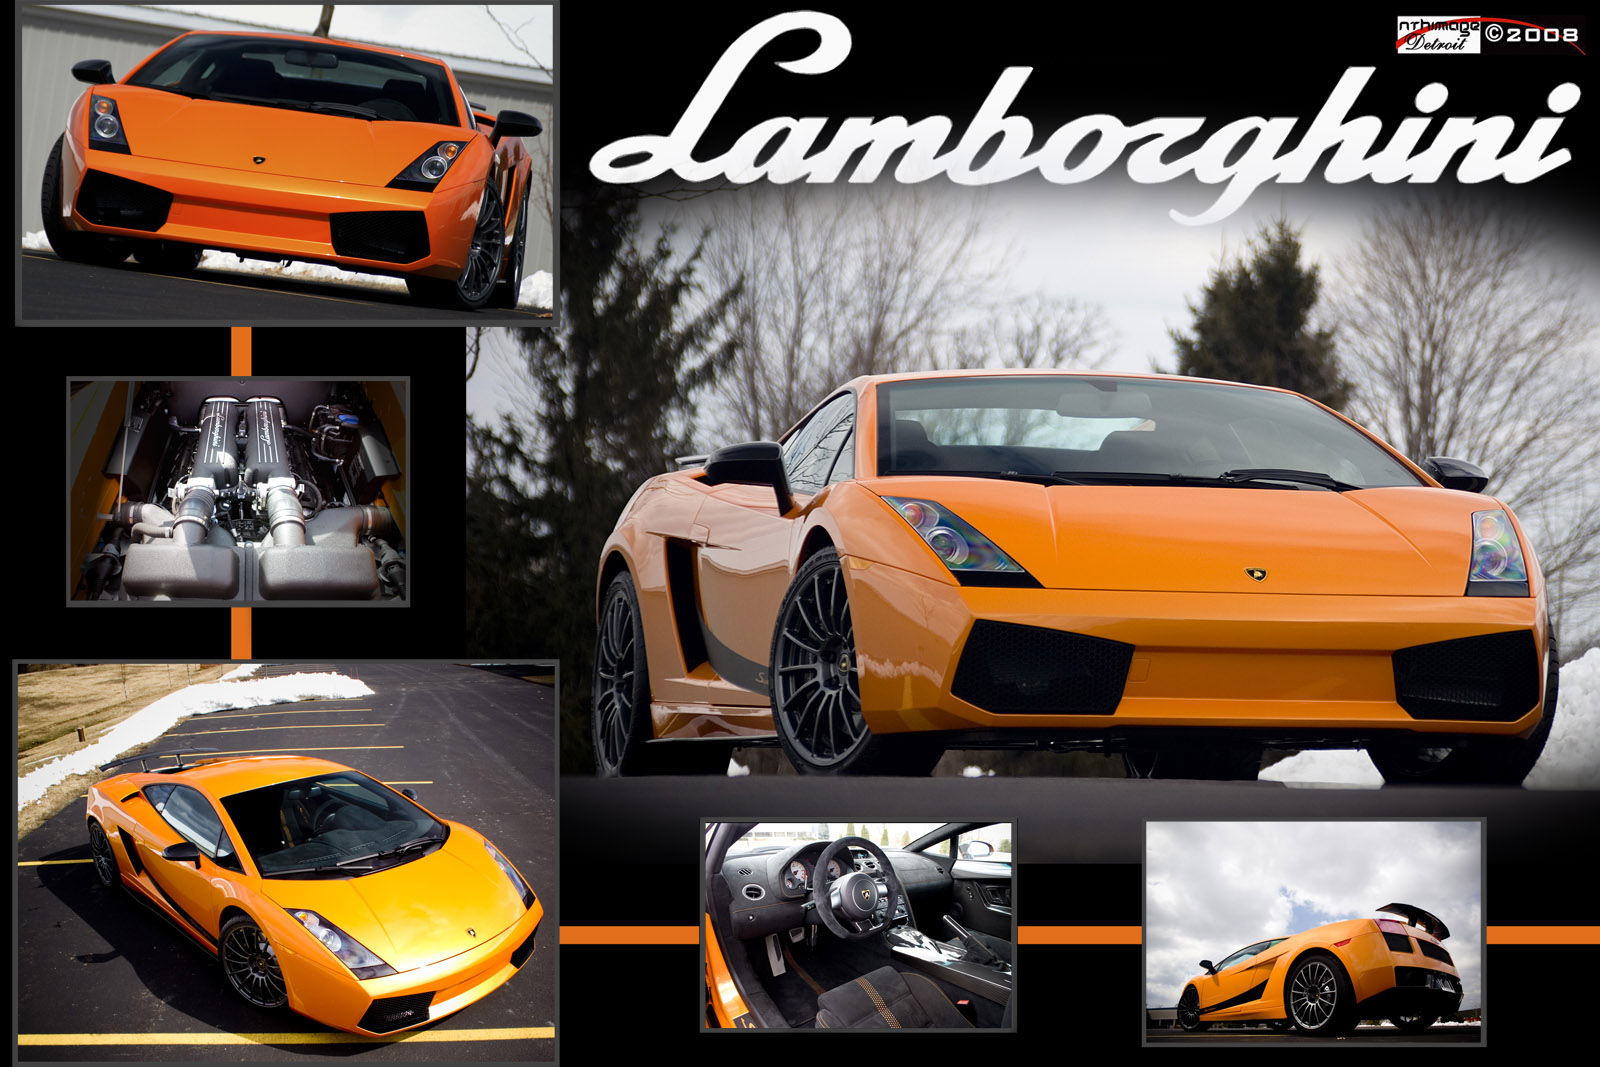 Nthimage Lamborghini Gallardo Superleggera Wallpapers